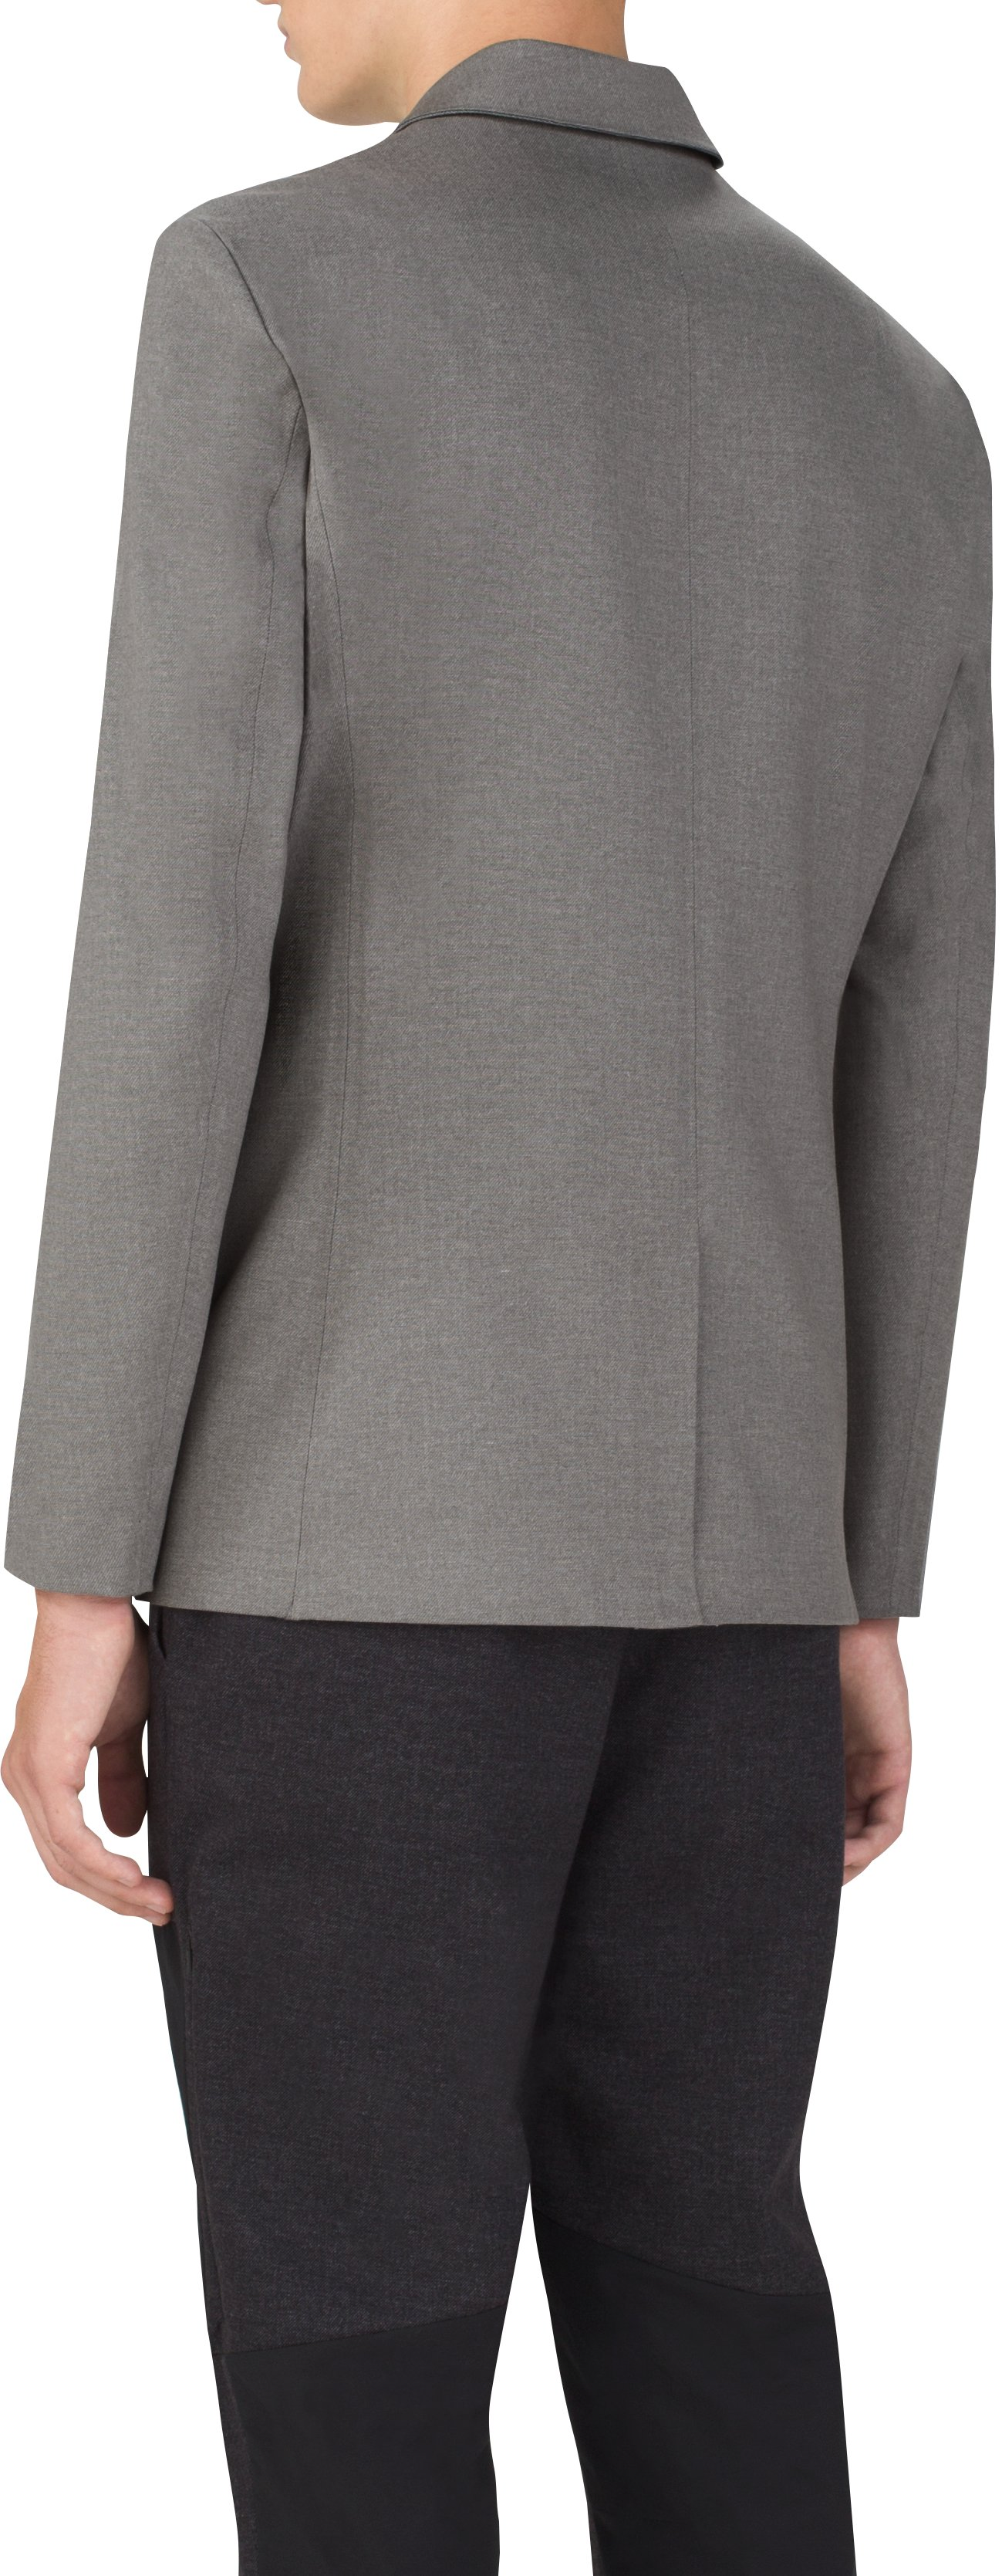 Men's UAS Draftday Tailored Blazer, LIGHT HEATHER GRAY,